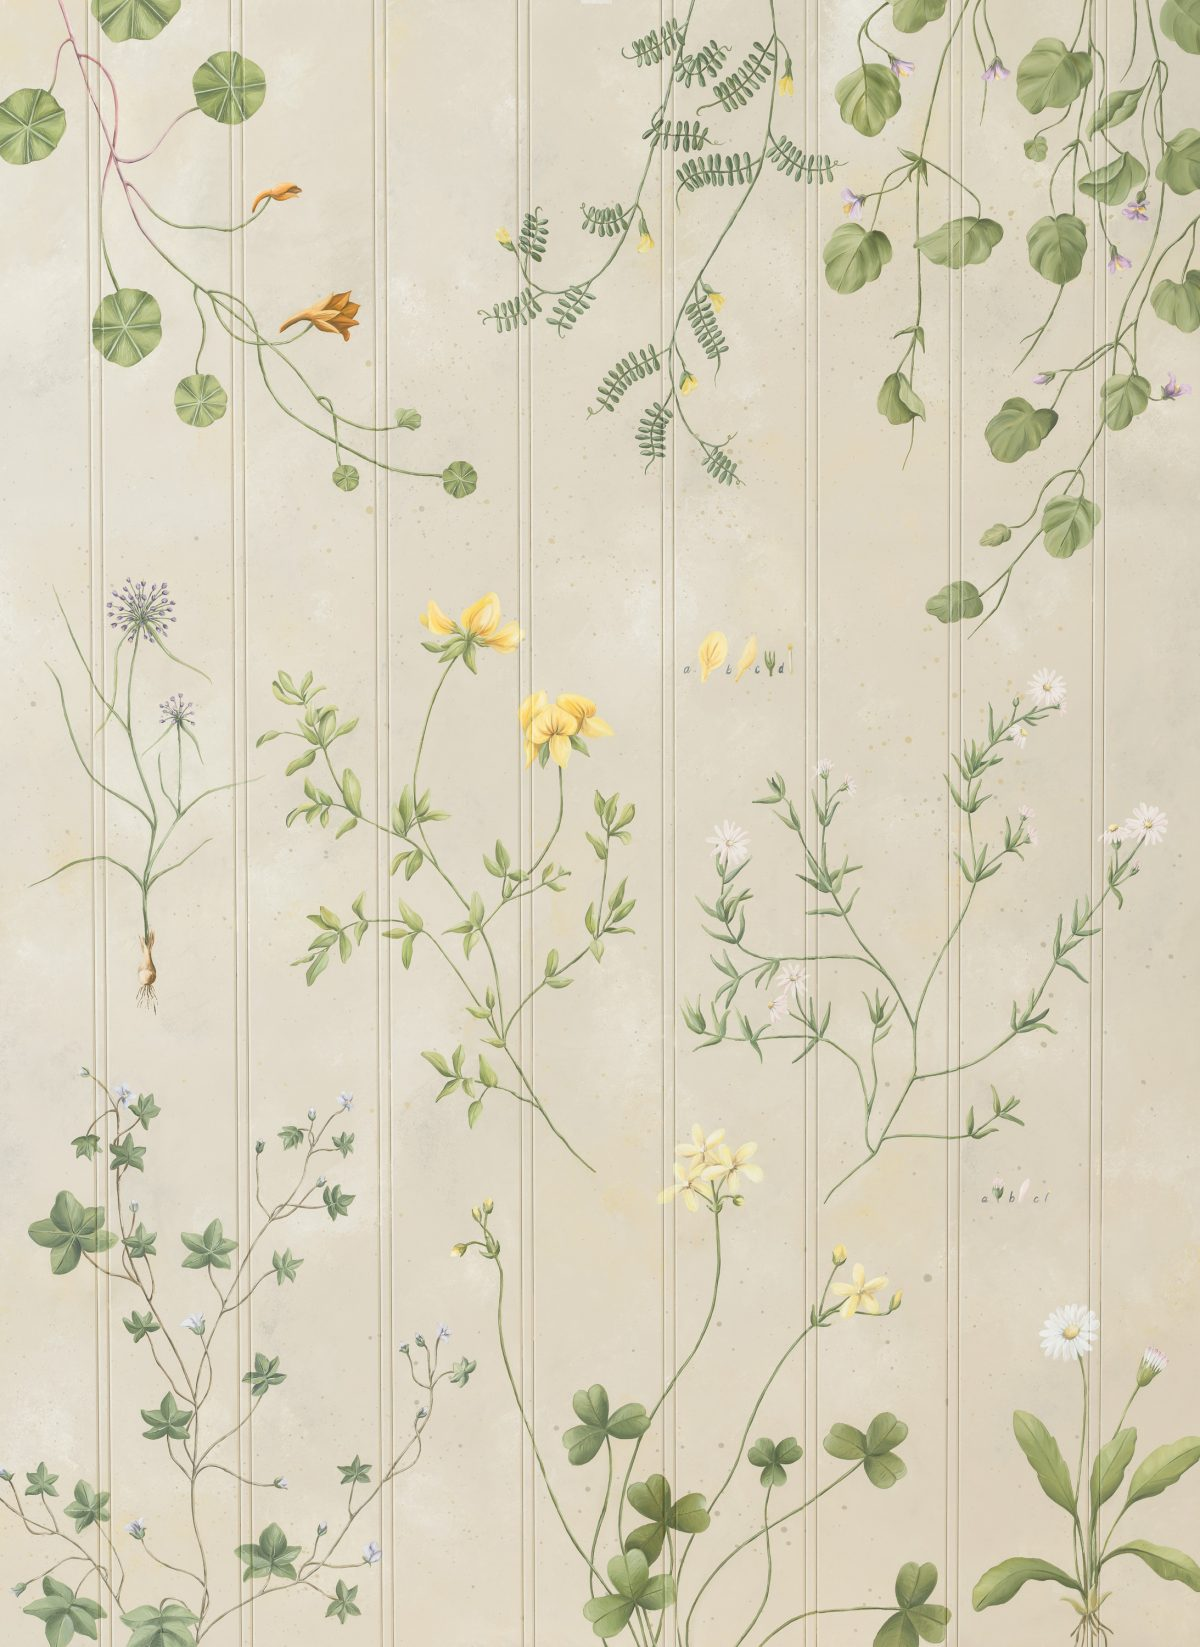 Soft suggestions of colour and the prettiest little flowers - we took inspiration from old botanical books here.